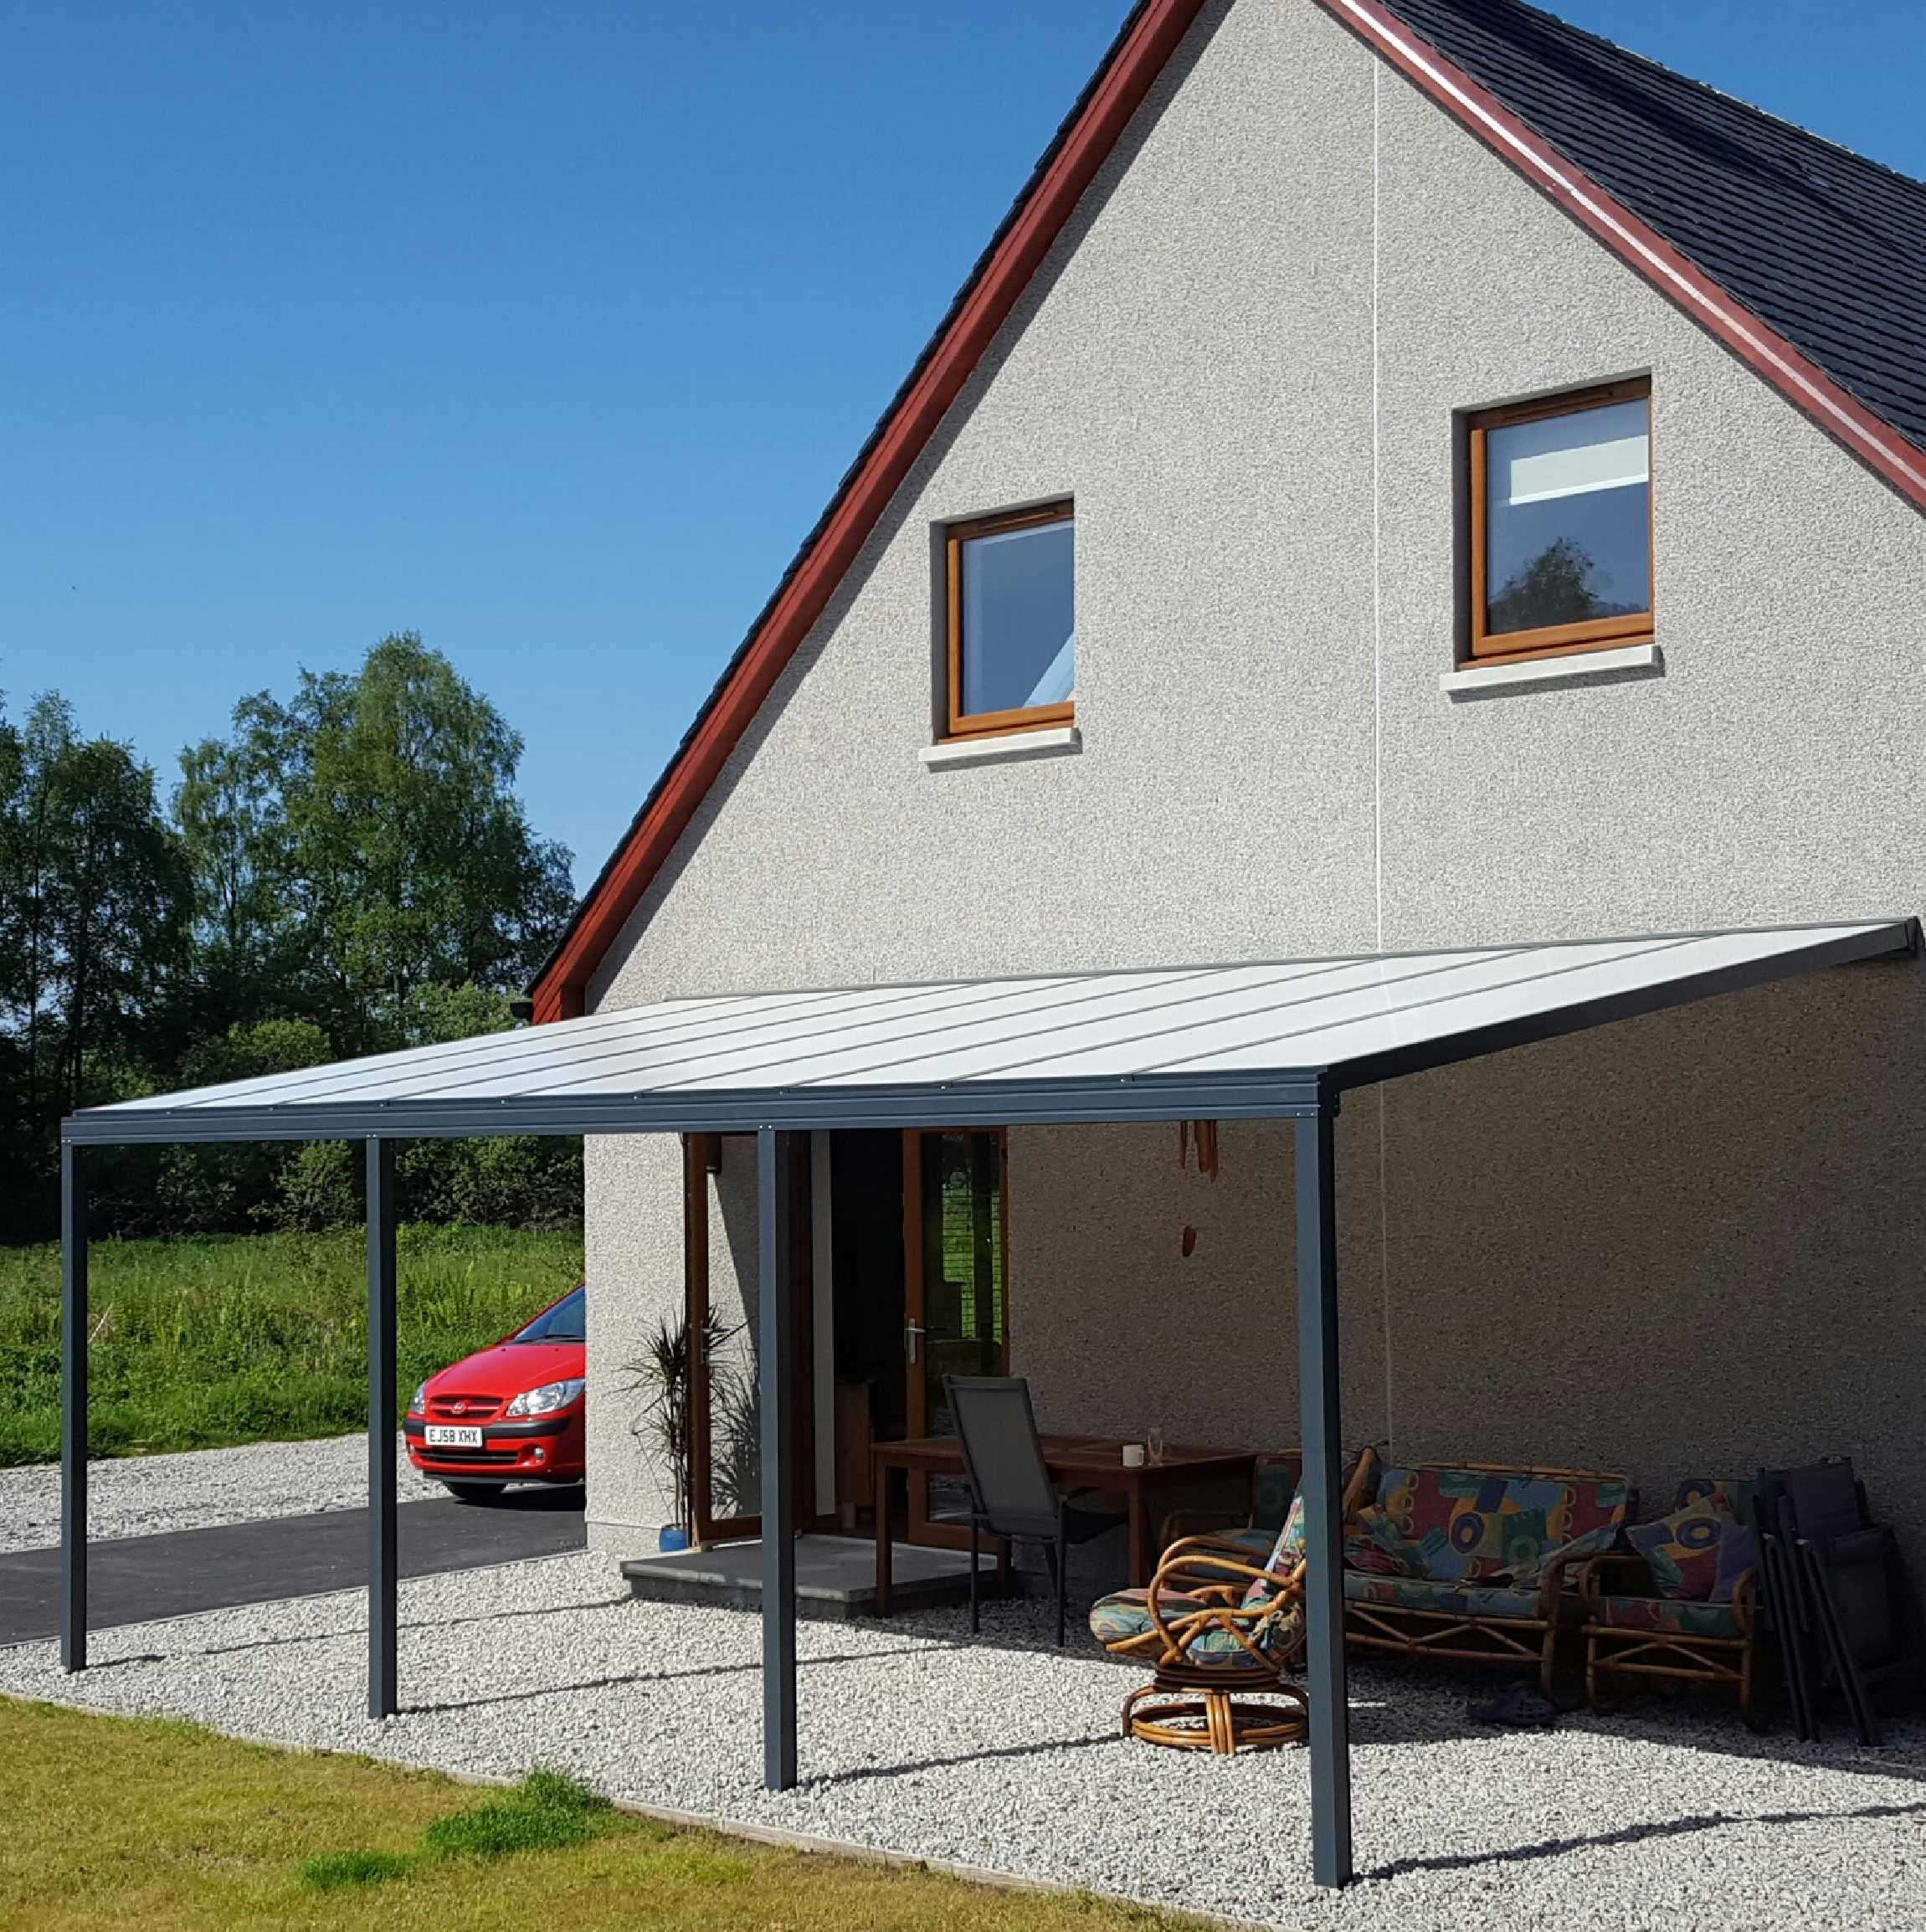 Great selection of Omega Smart Lean-To Canopy, Anthracite Grey, 16mm Polycarbonate Glazing - 10.6m (W) x 2.0m (P), (5) Supporting Posts